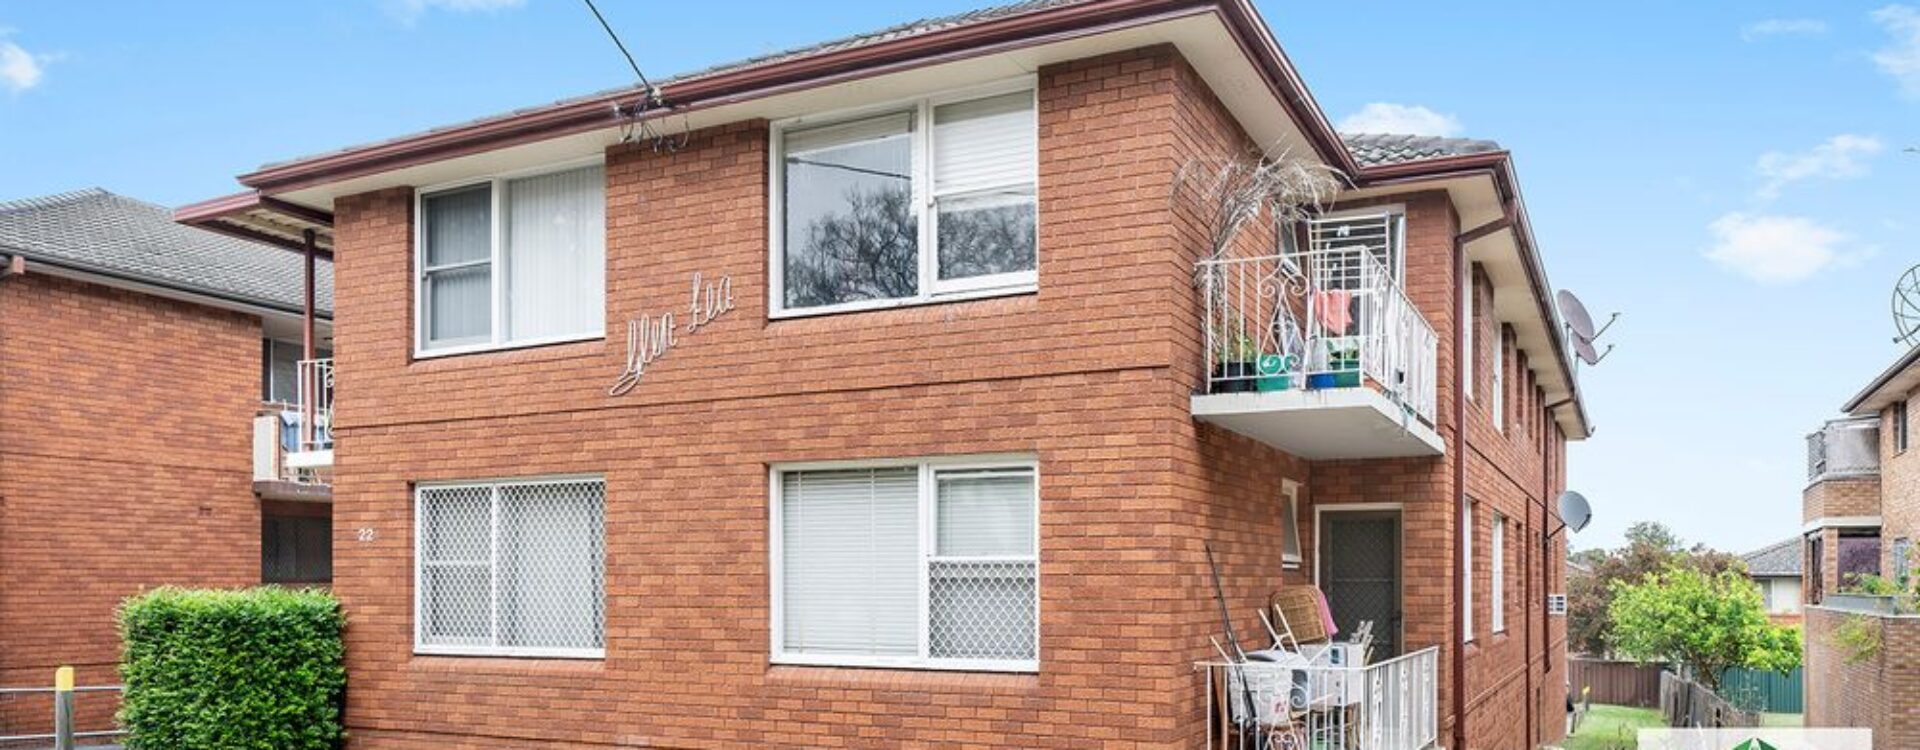 7/22 Shadforth Street, Wiley Park NSW 2195